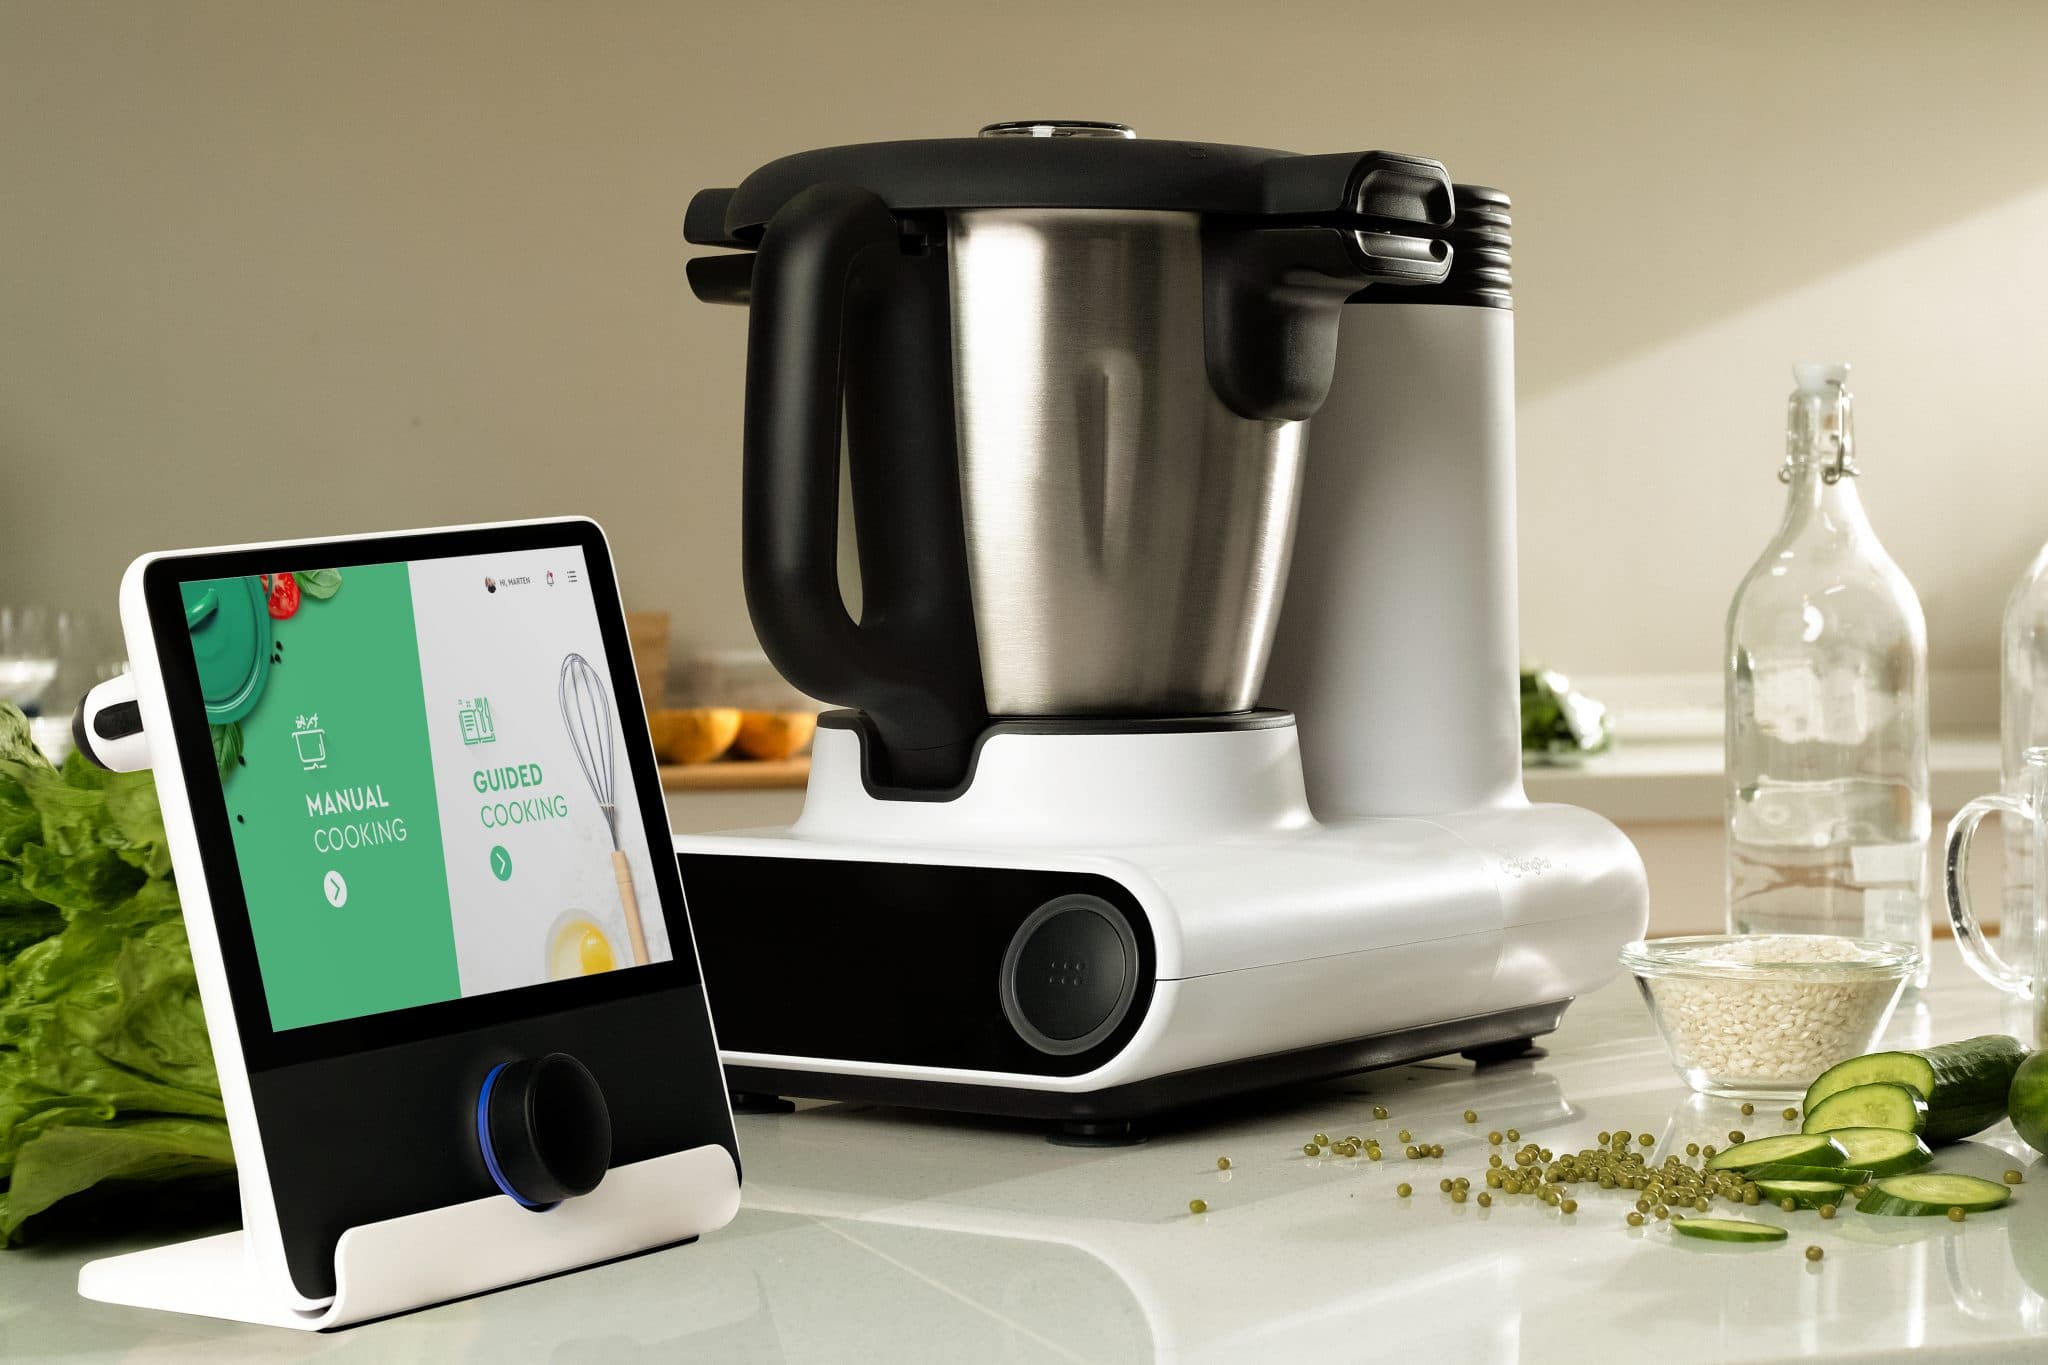 Julia is the autonomous cooking system we have been waiting for! CES 2020